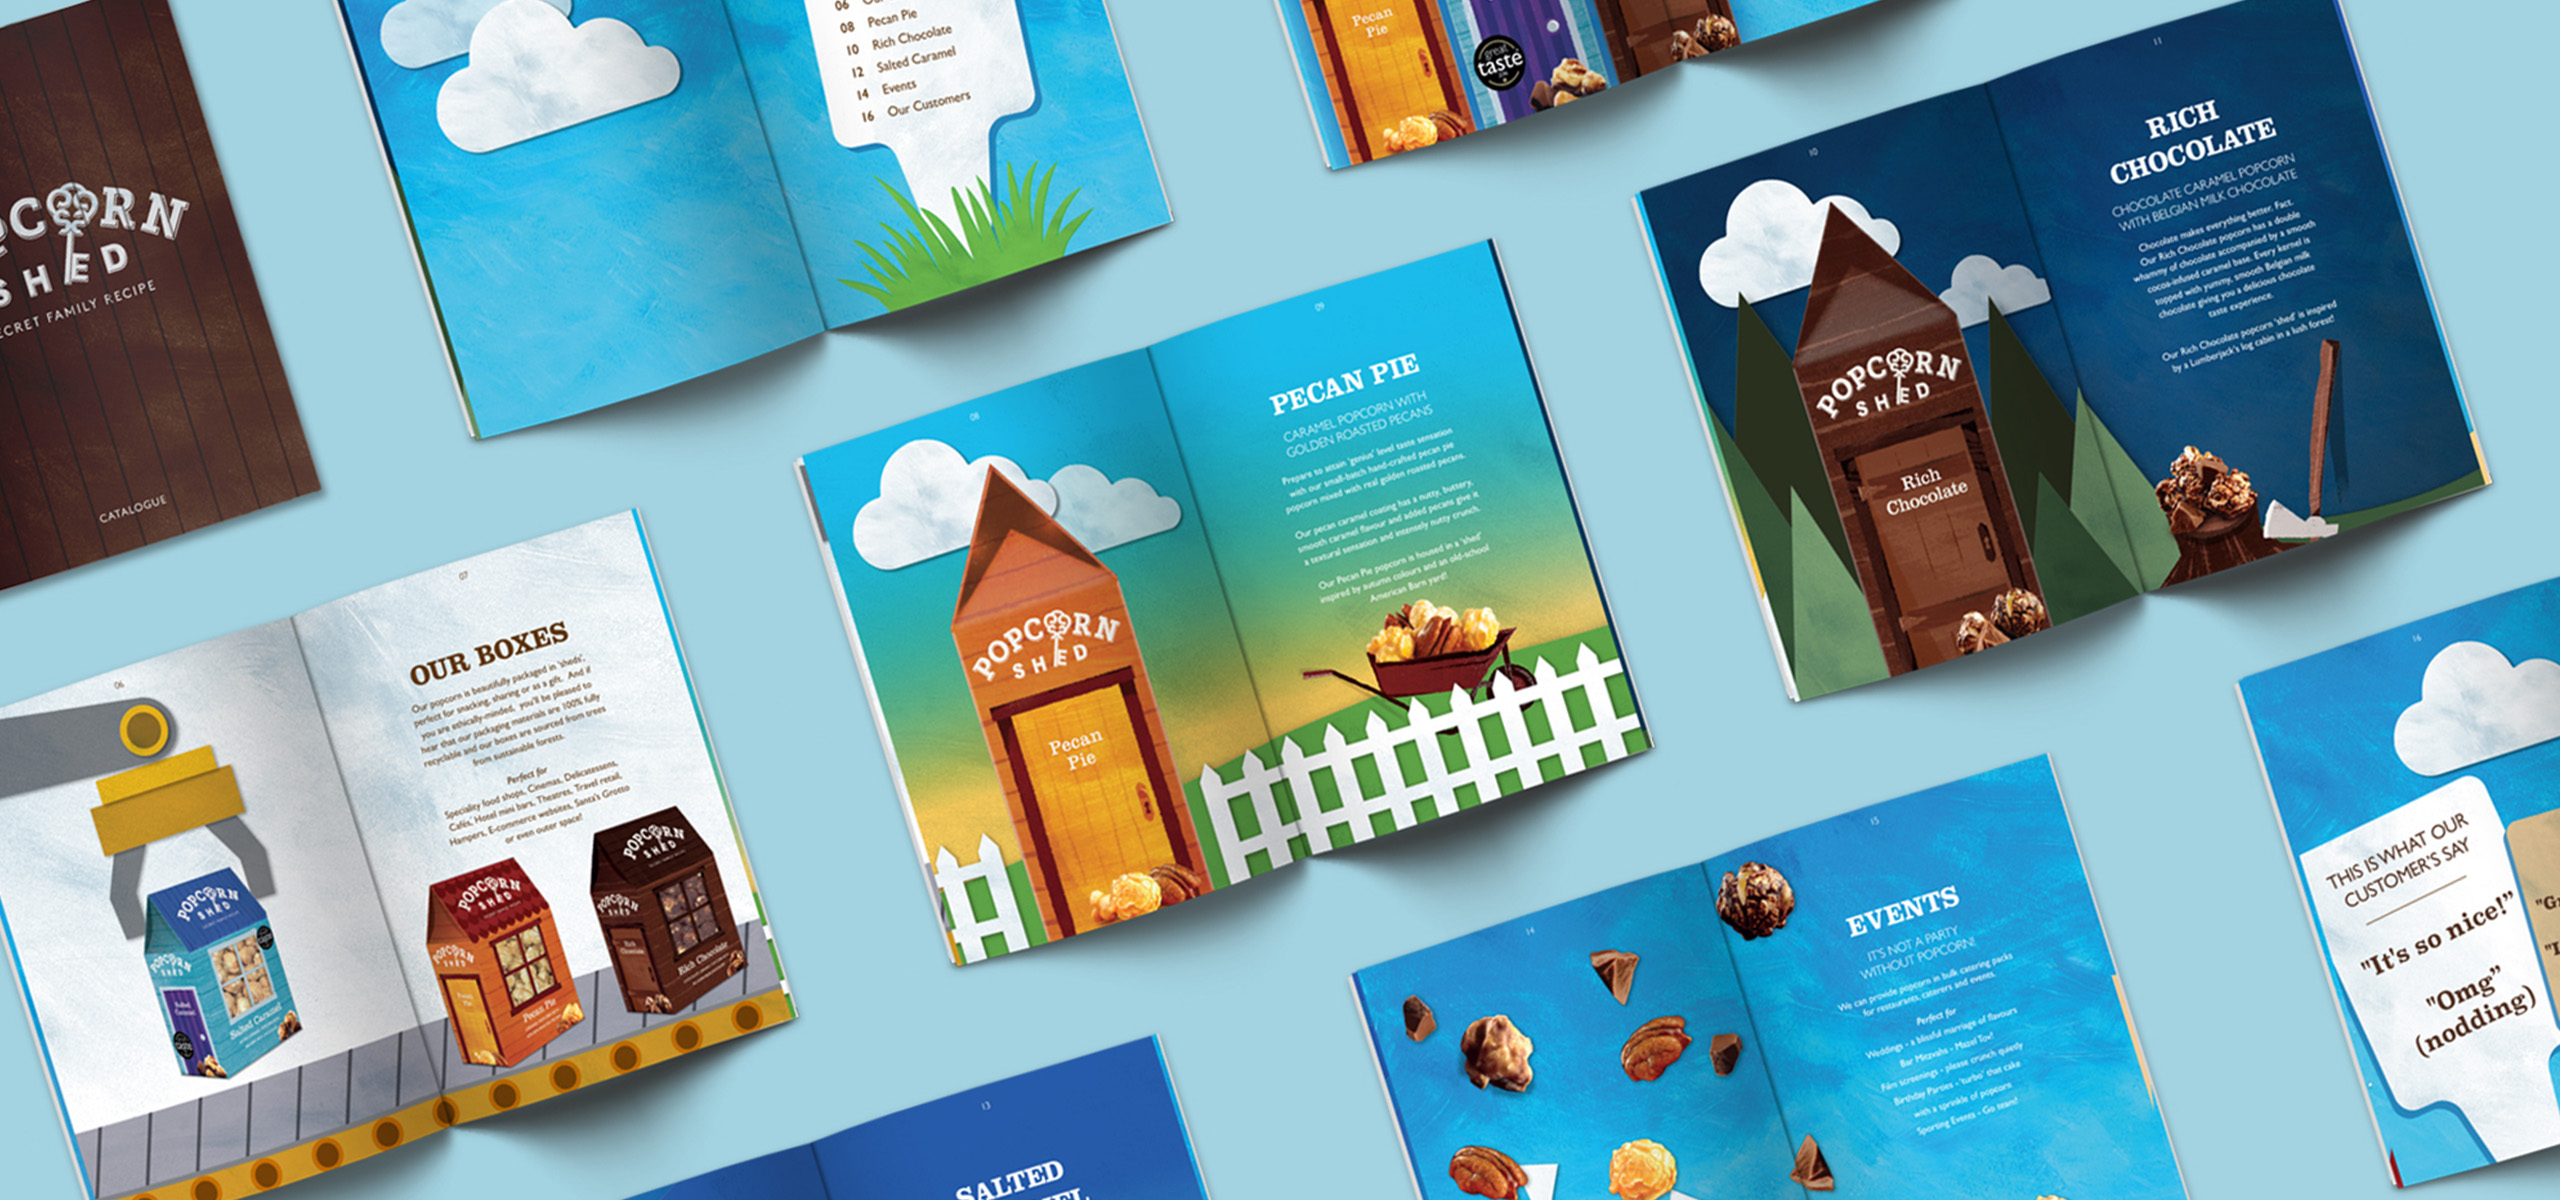 Brand book for food startup brand Popcorn Shed, designed by White Bear Studio